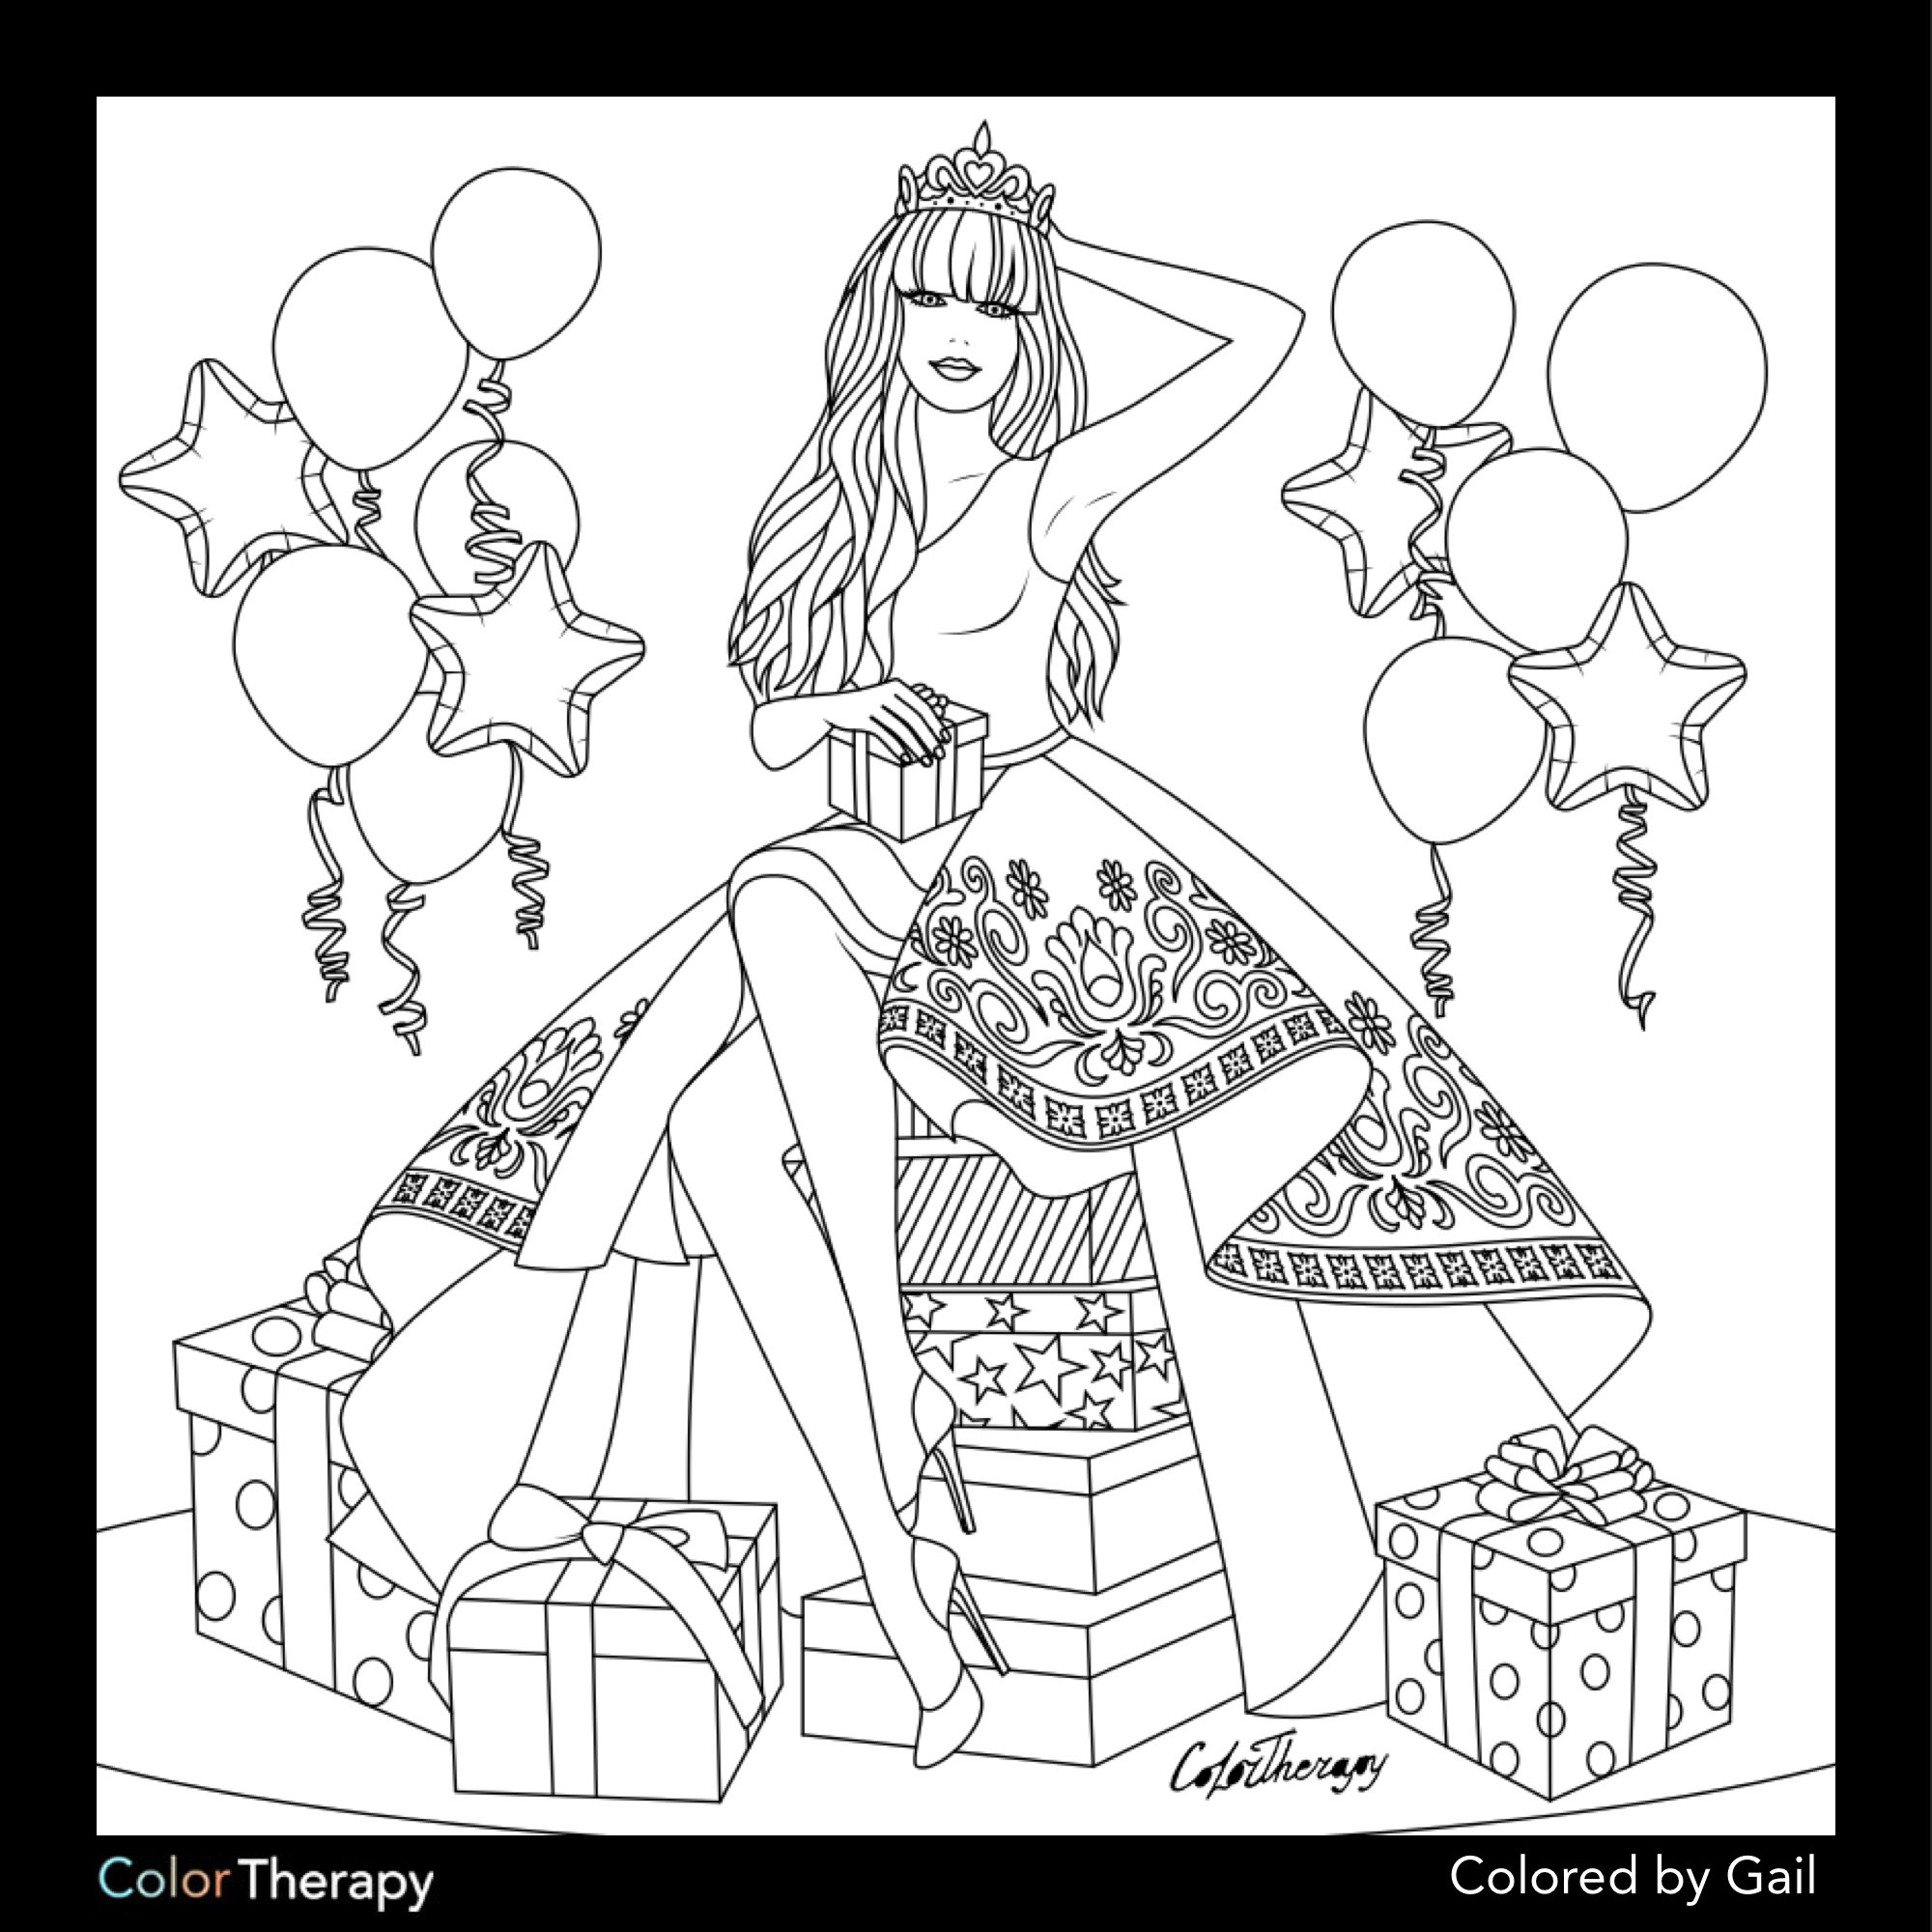 quiver coloring sheets quiver app coloring pages at getdrawings free download sheets quiver coloring